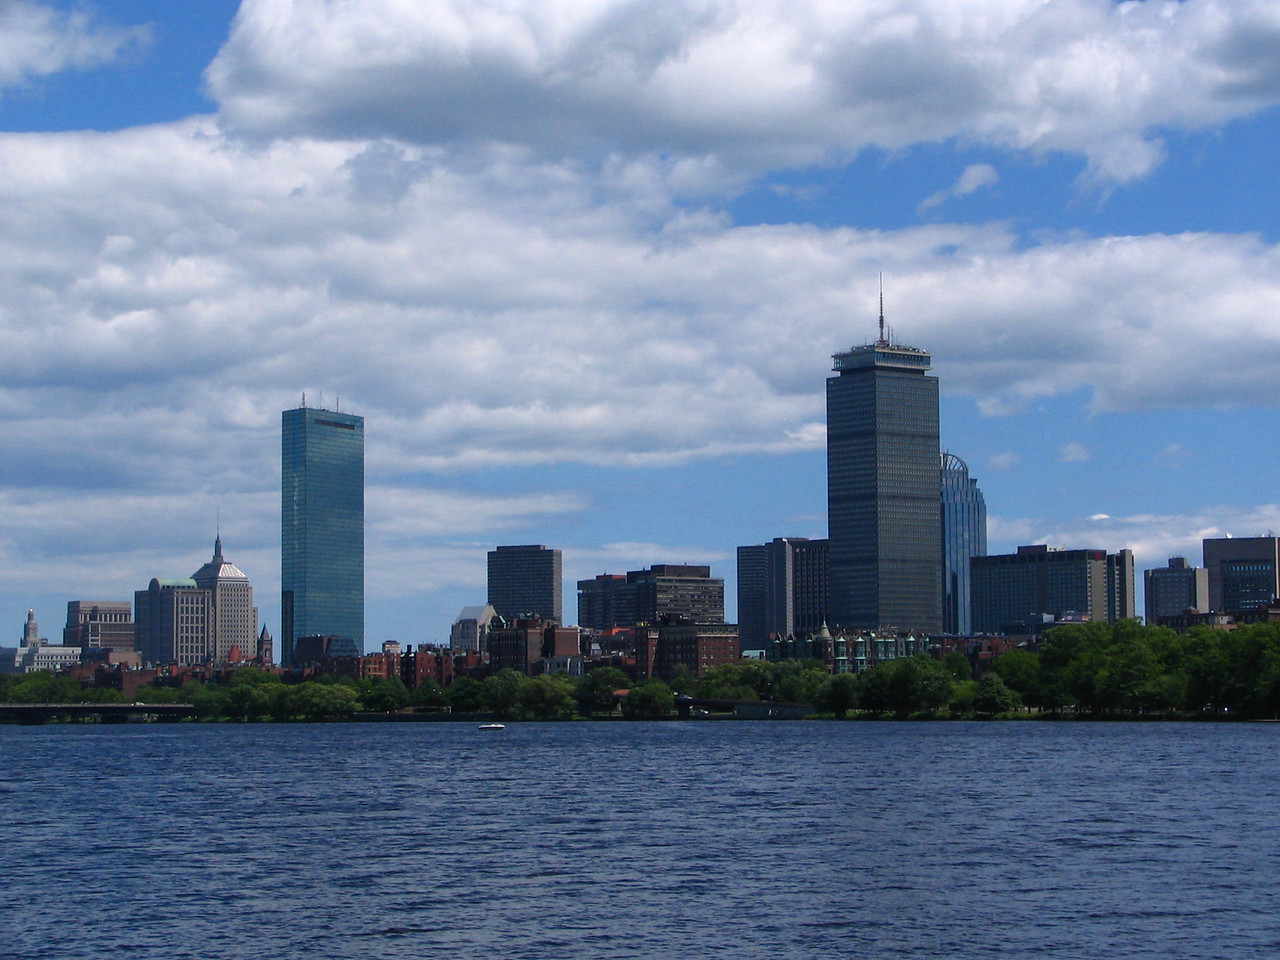 June 23, 2007, from Memorial Drive, Cambridge